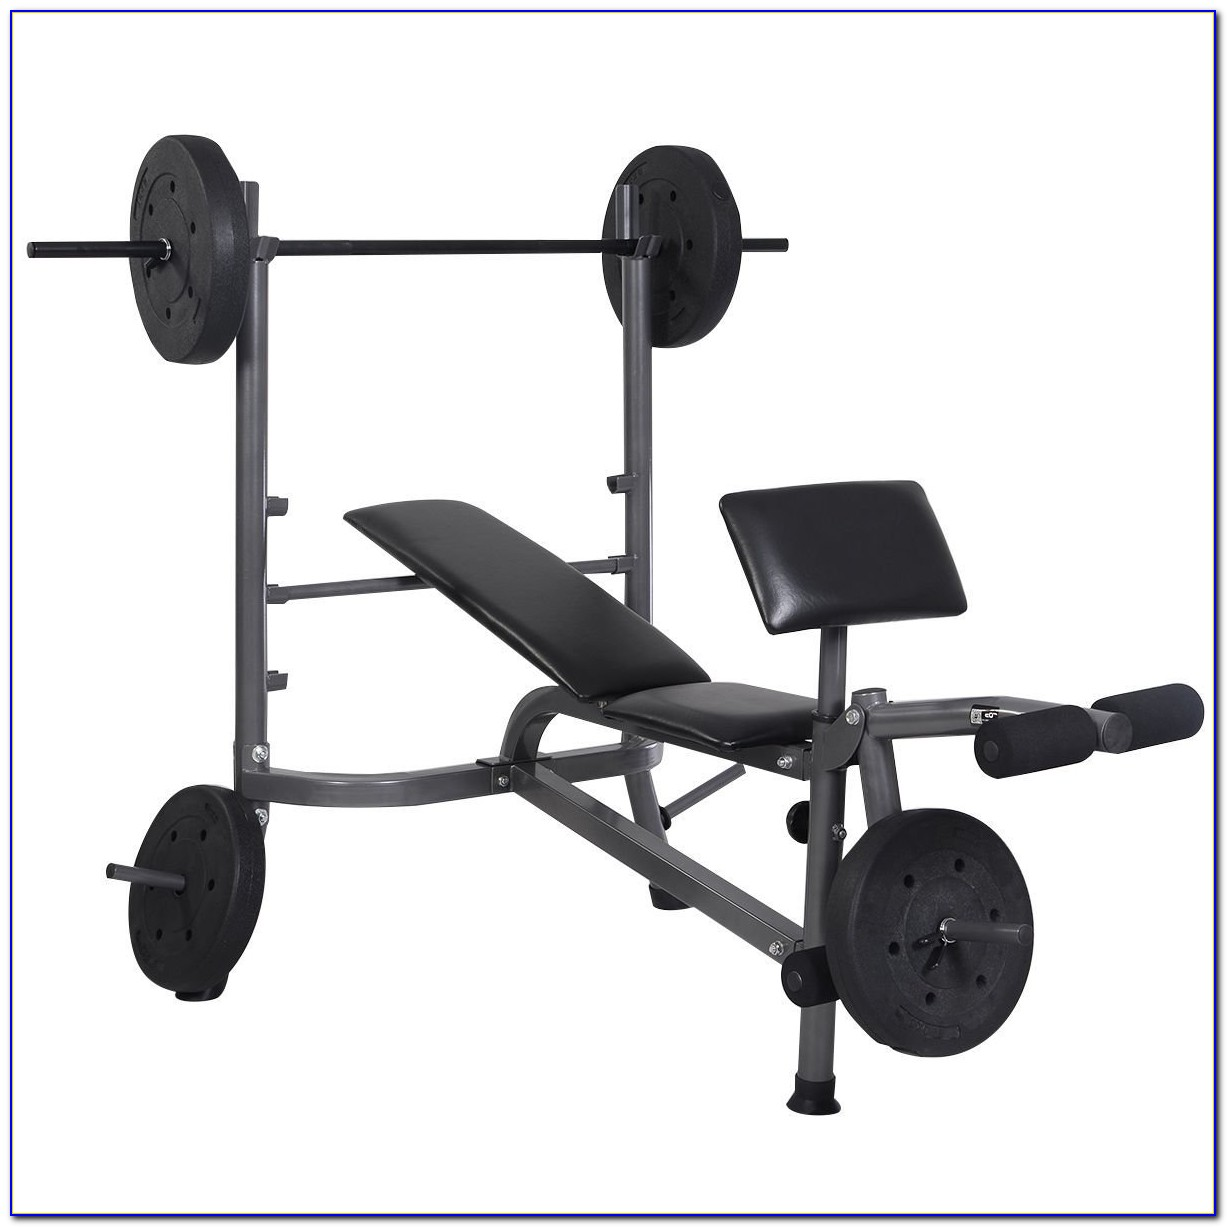 Best Weight Benches For Home Gym